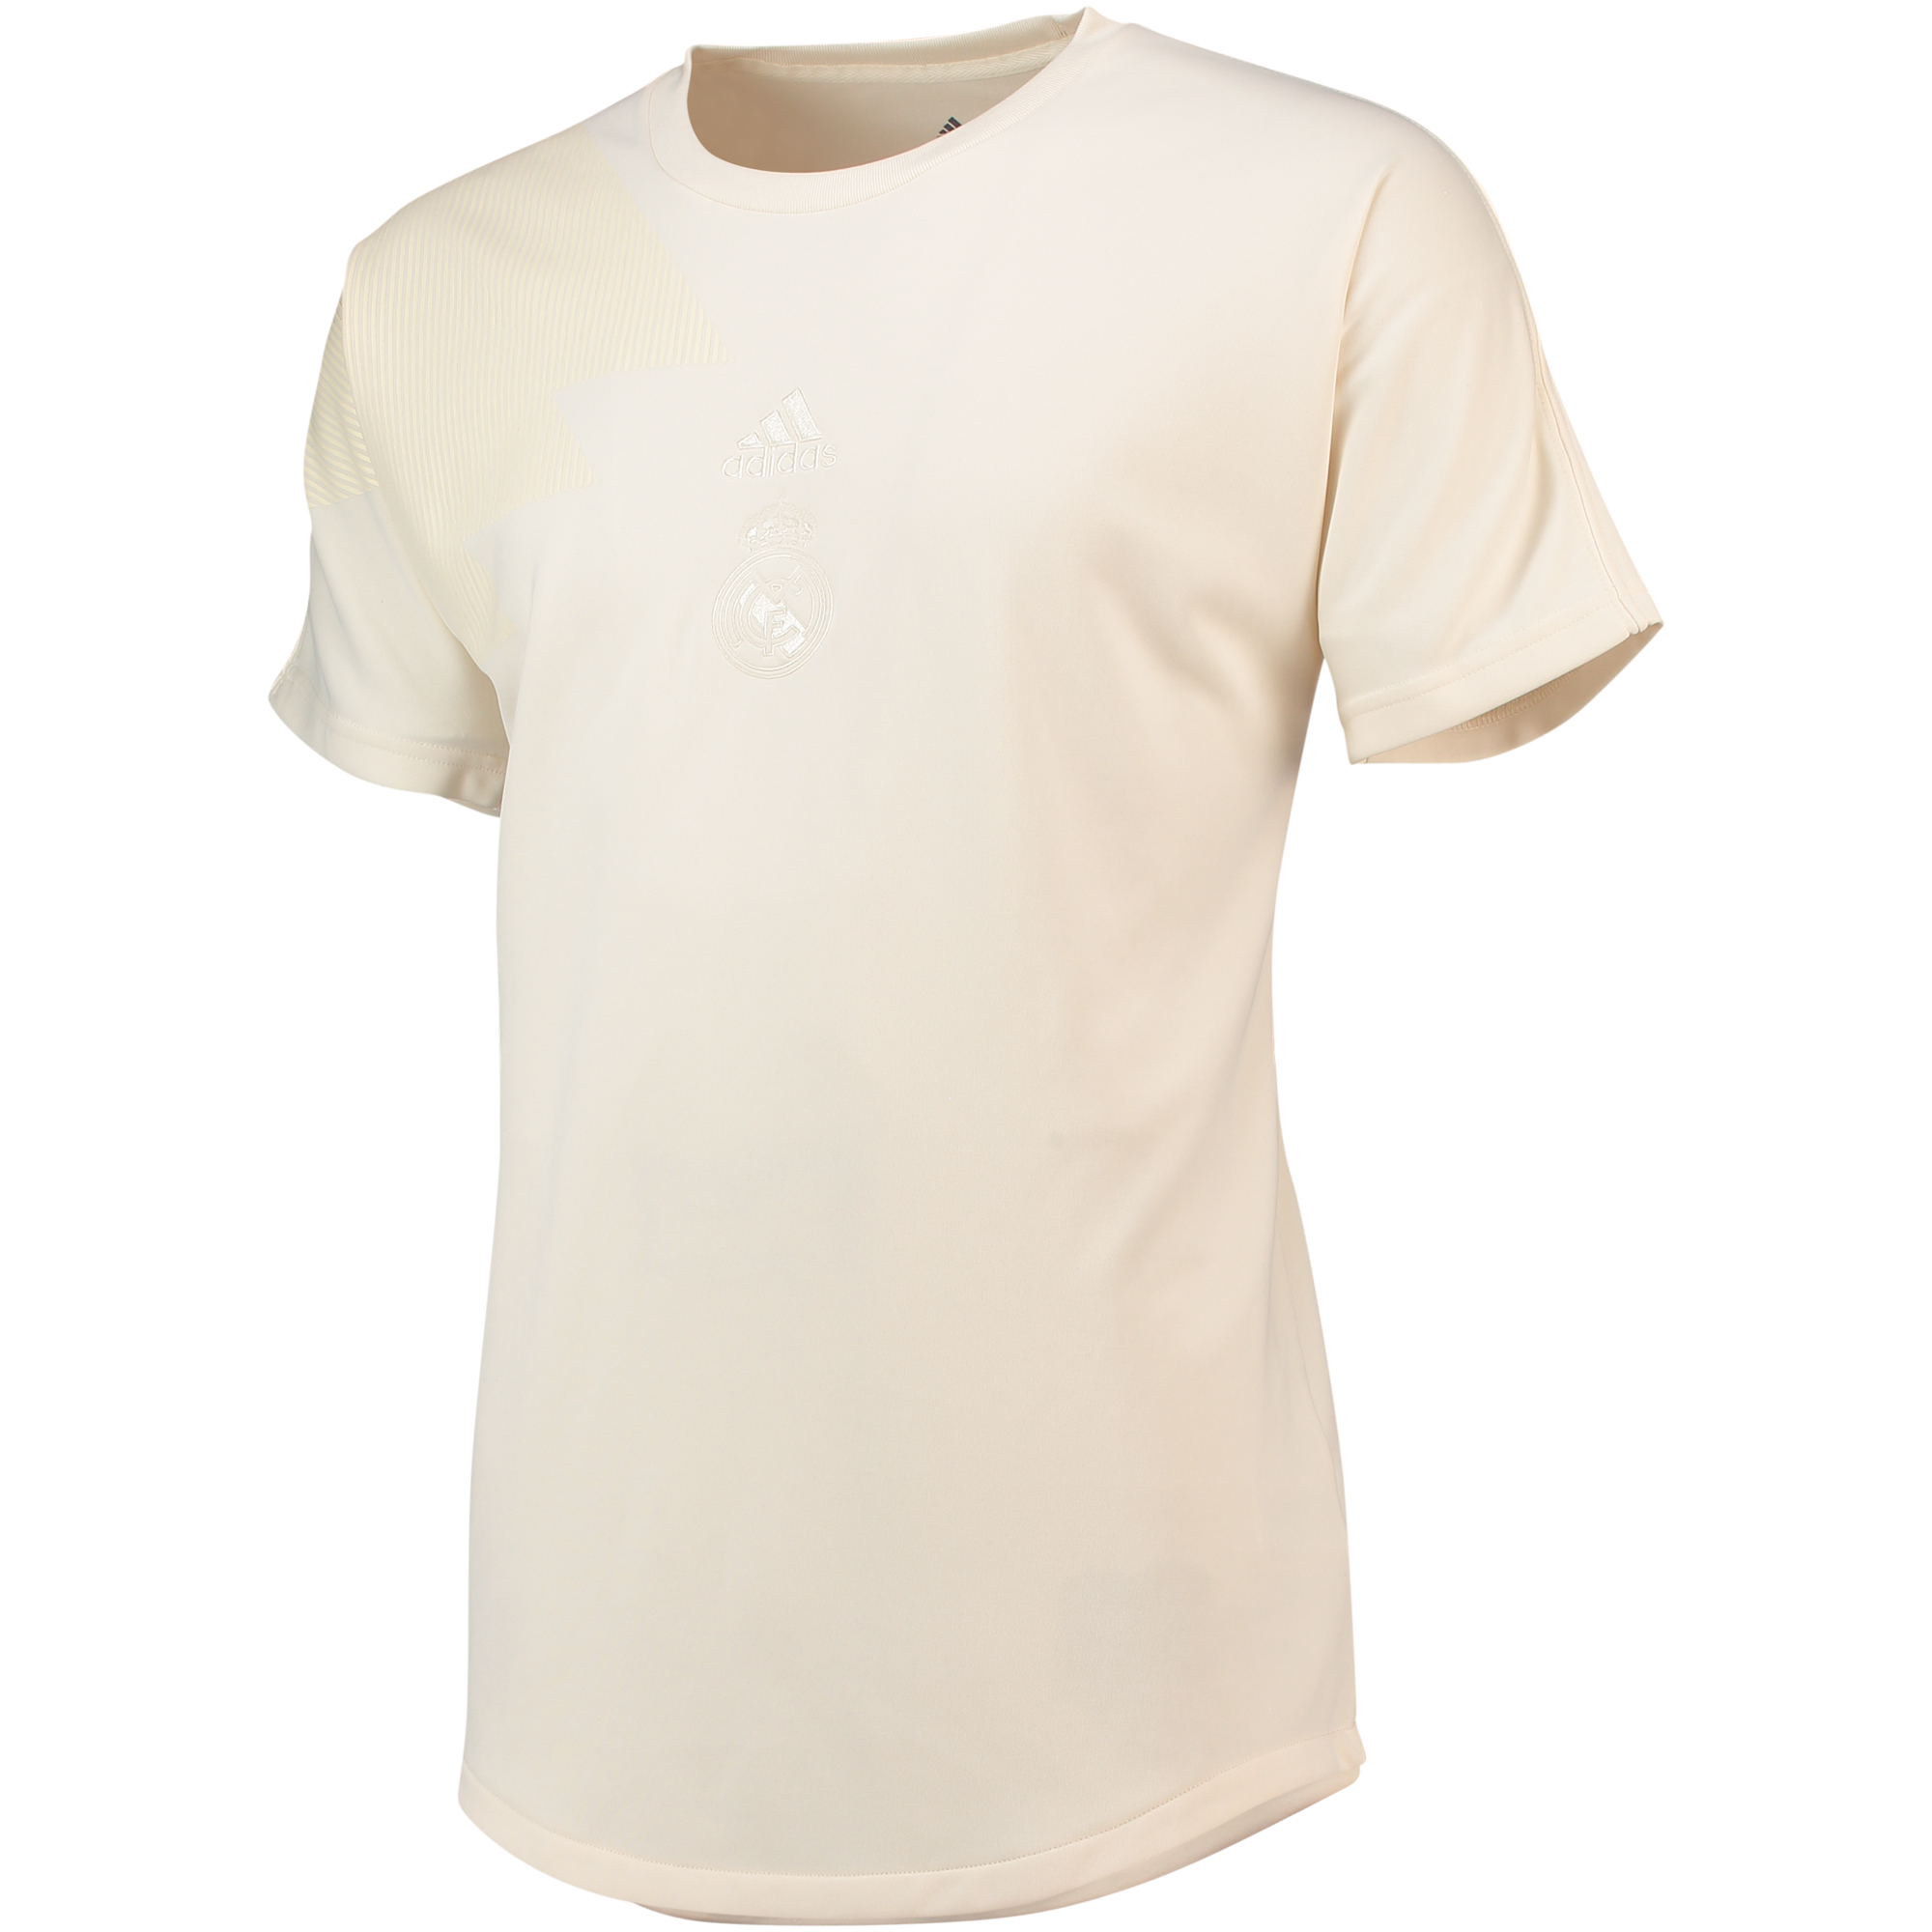 Camiseta del Real Madrid en blanco